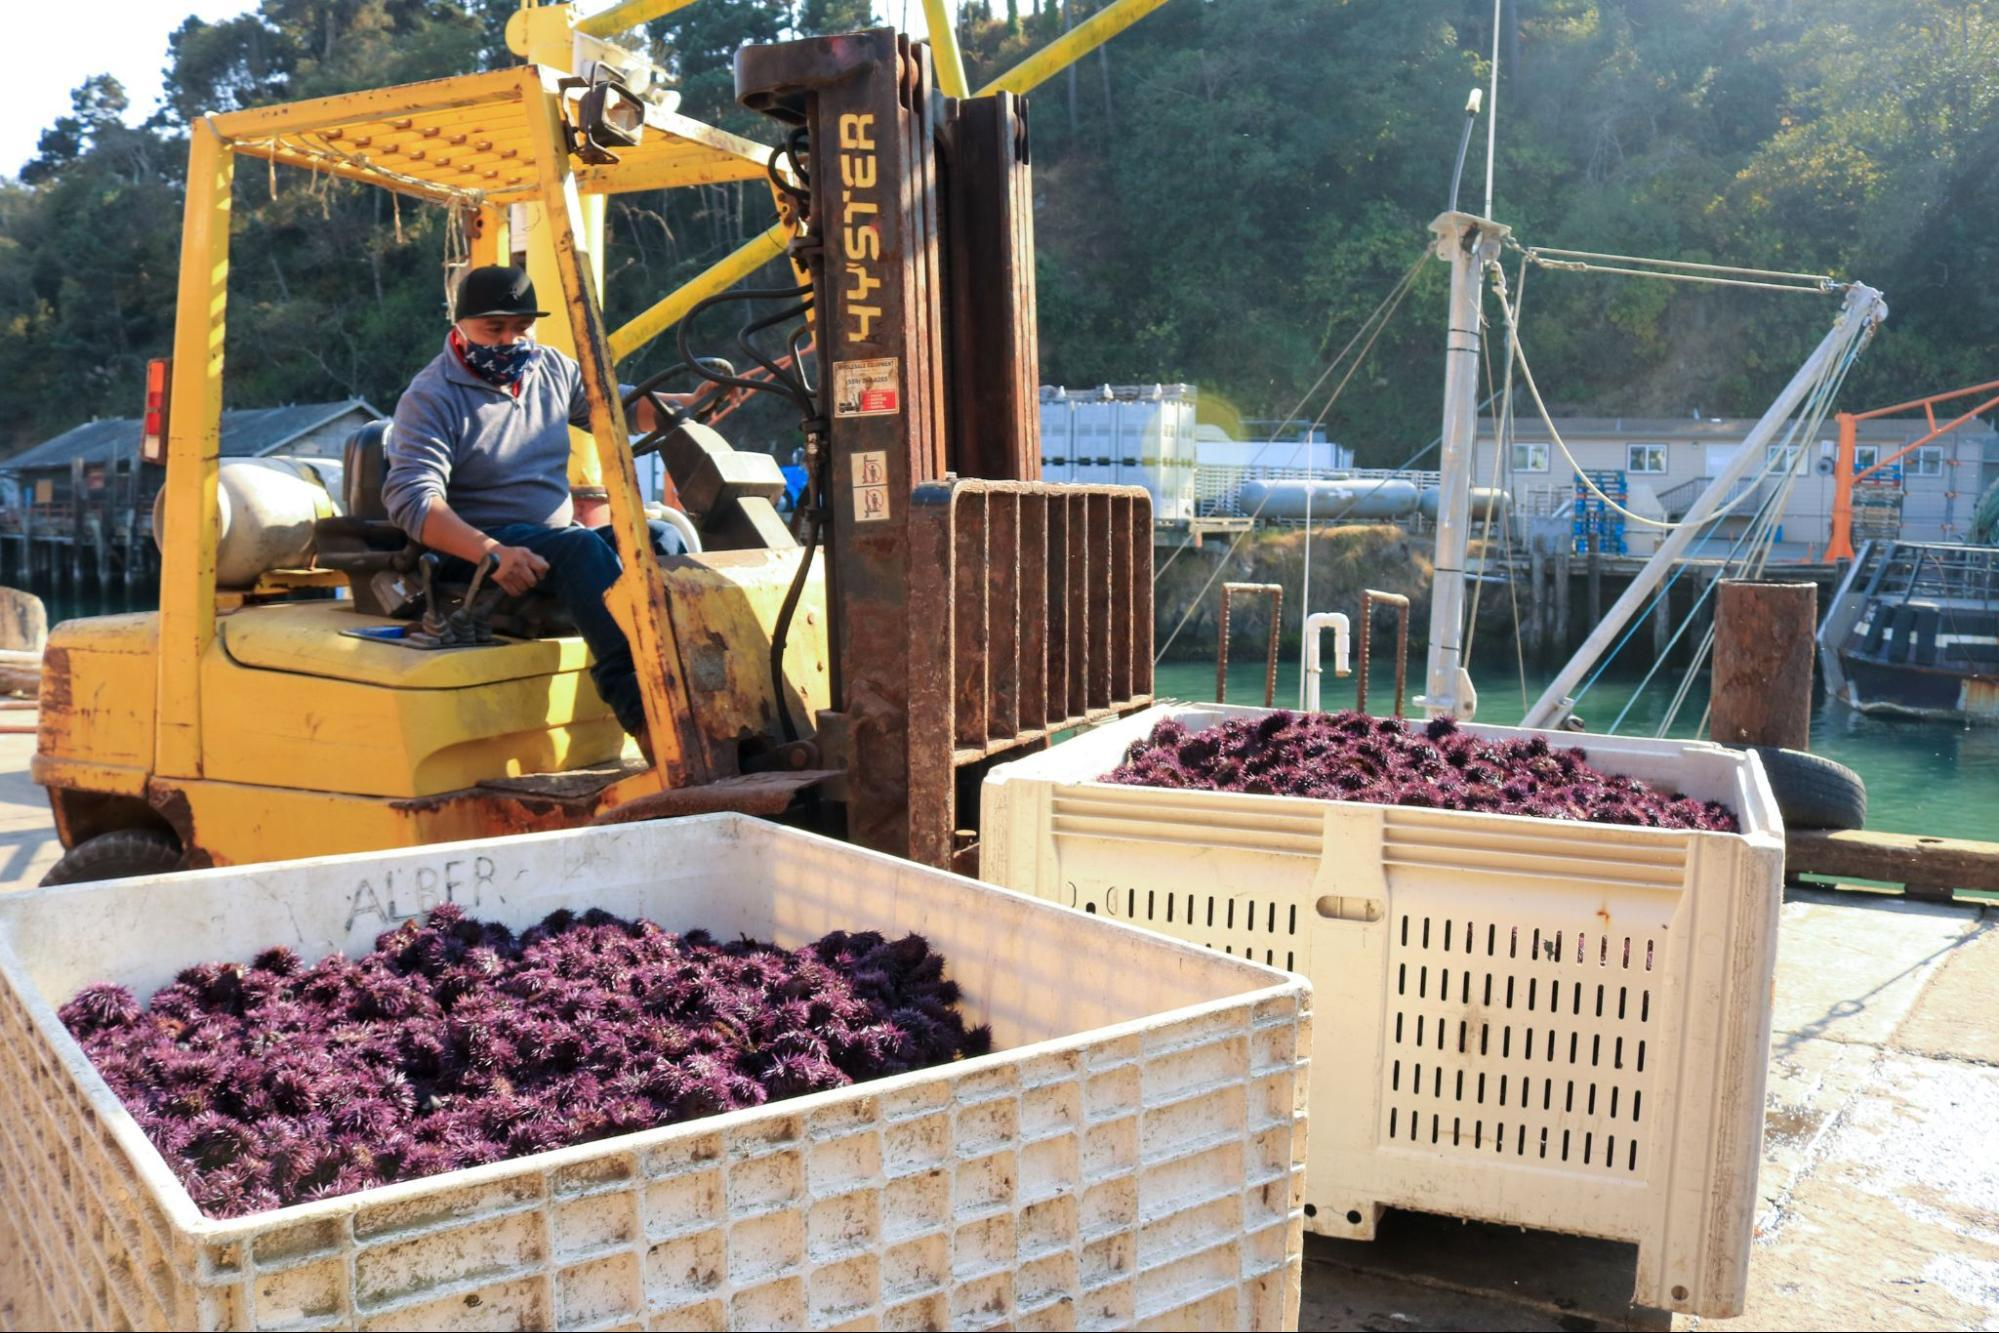 A man in a long-sleeved blue shirt and face bandana drives a yellow forklift with a large, white crate teeming with spiny purple orbs (urchins). Another large crate full or urchins stands in the foreground. In the back, water and docks are visible.